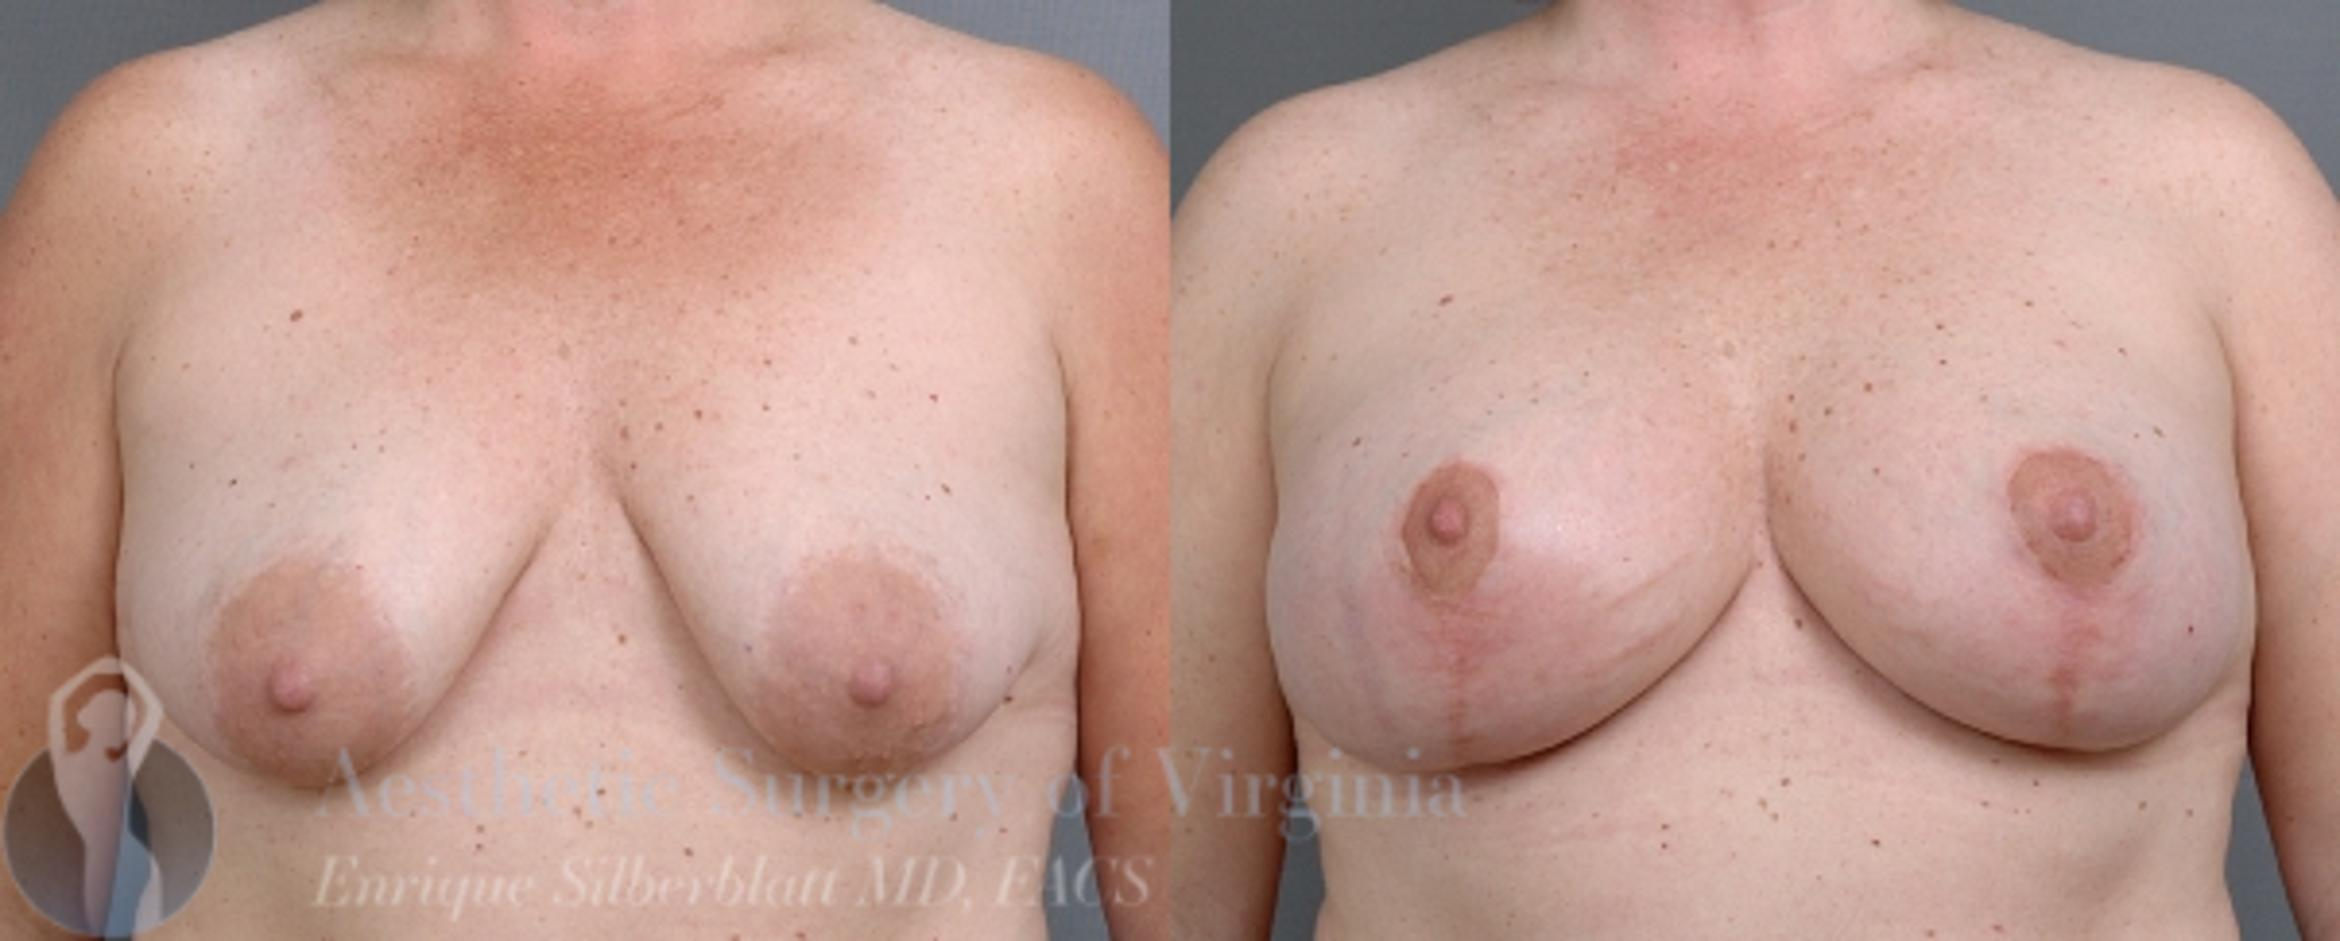 Breast Lift Case 21 Before & After View #1 | Roanoke, VA | Aesthetic Surgery of Virginia: Enrique Silberblatt, MD